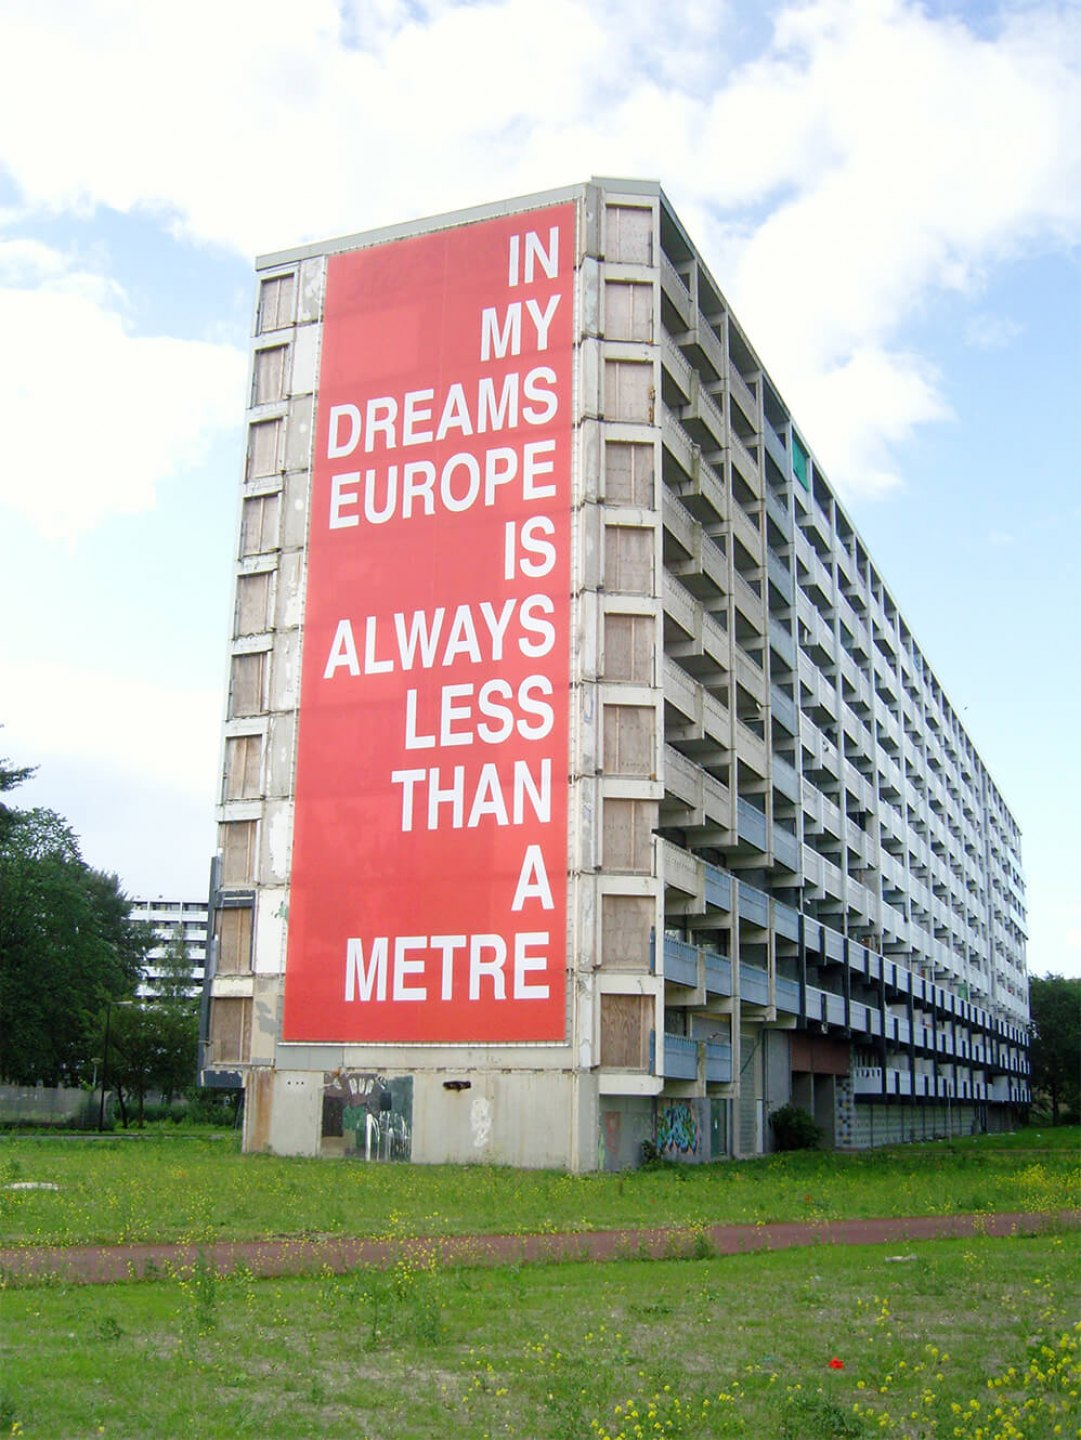 Runo Lagomarsino, <em>In  My Dreams Europe is Always Less than a Metre, </em>2011,Outdoor Banner,     Amsterdam - Mendes Wood DM